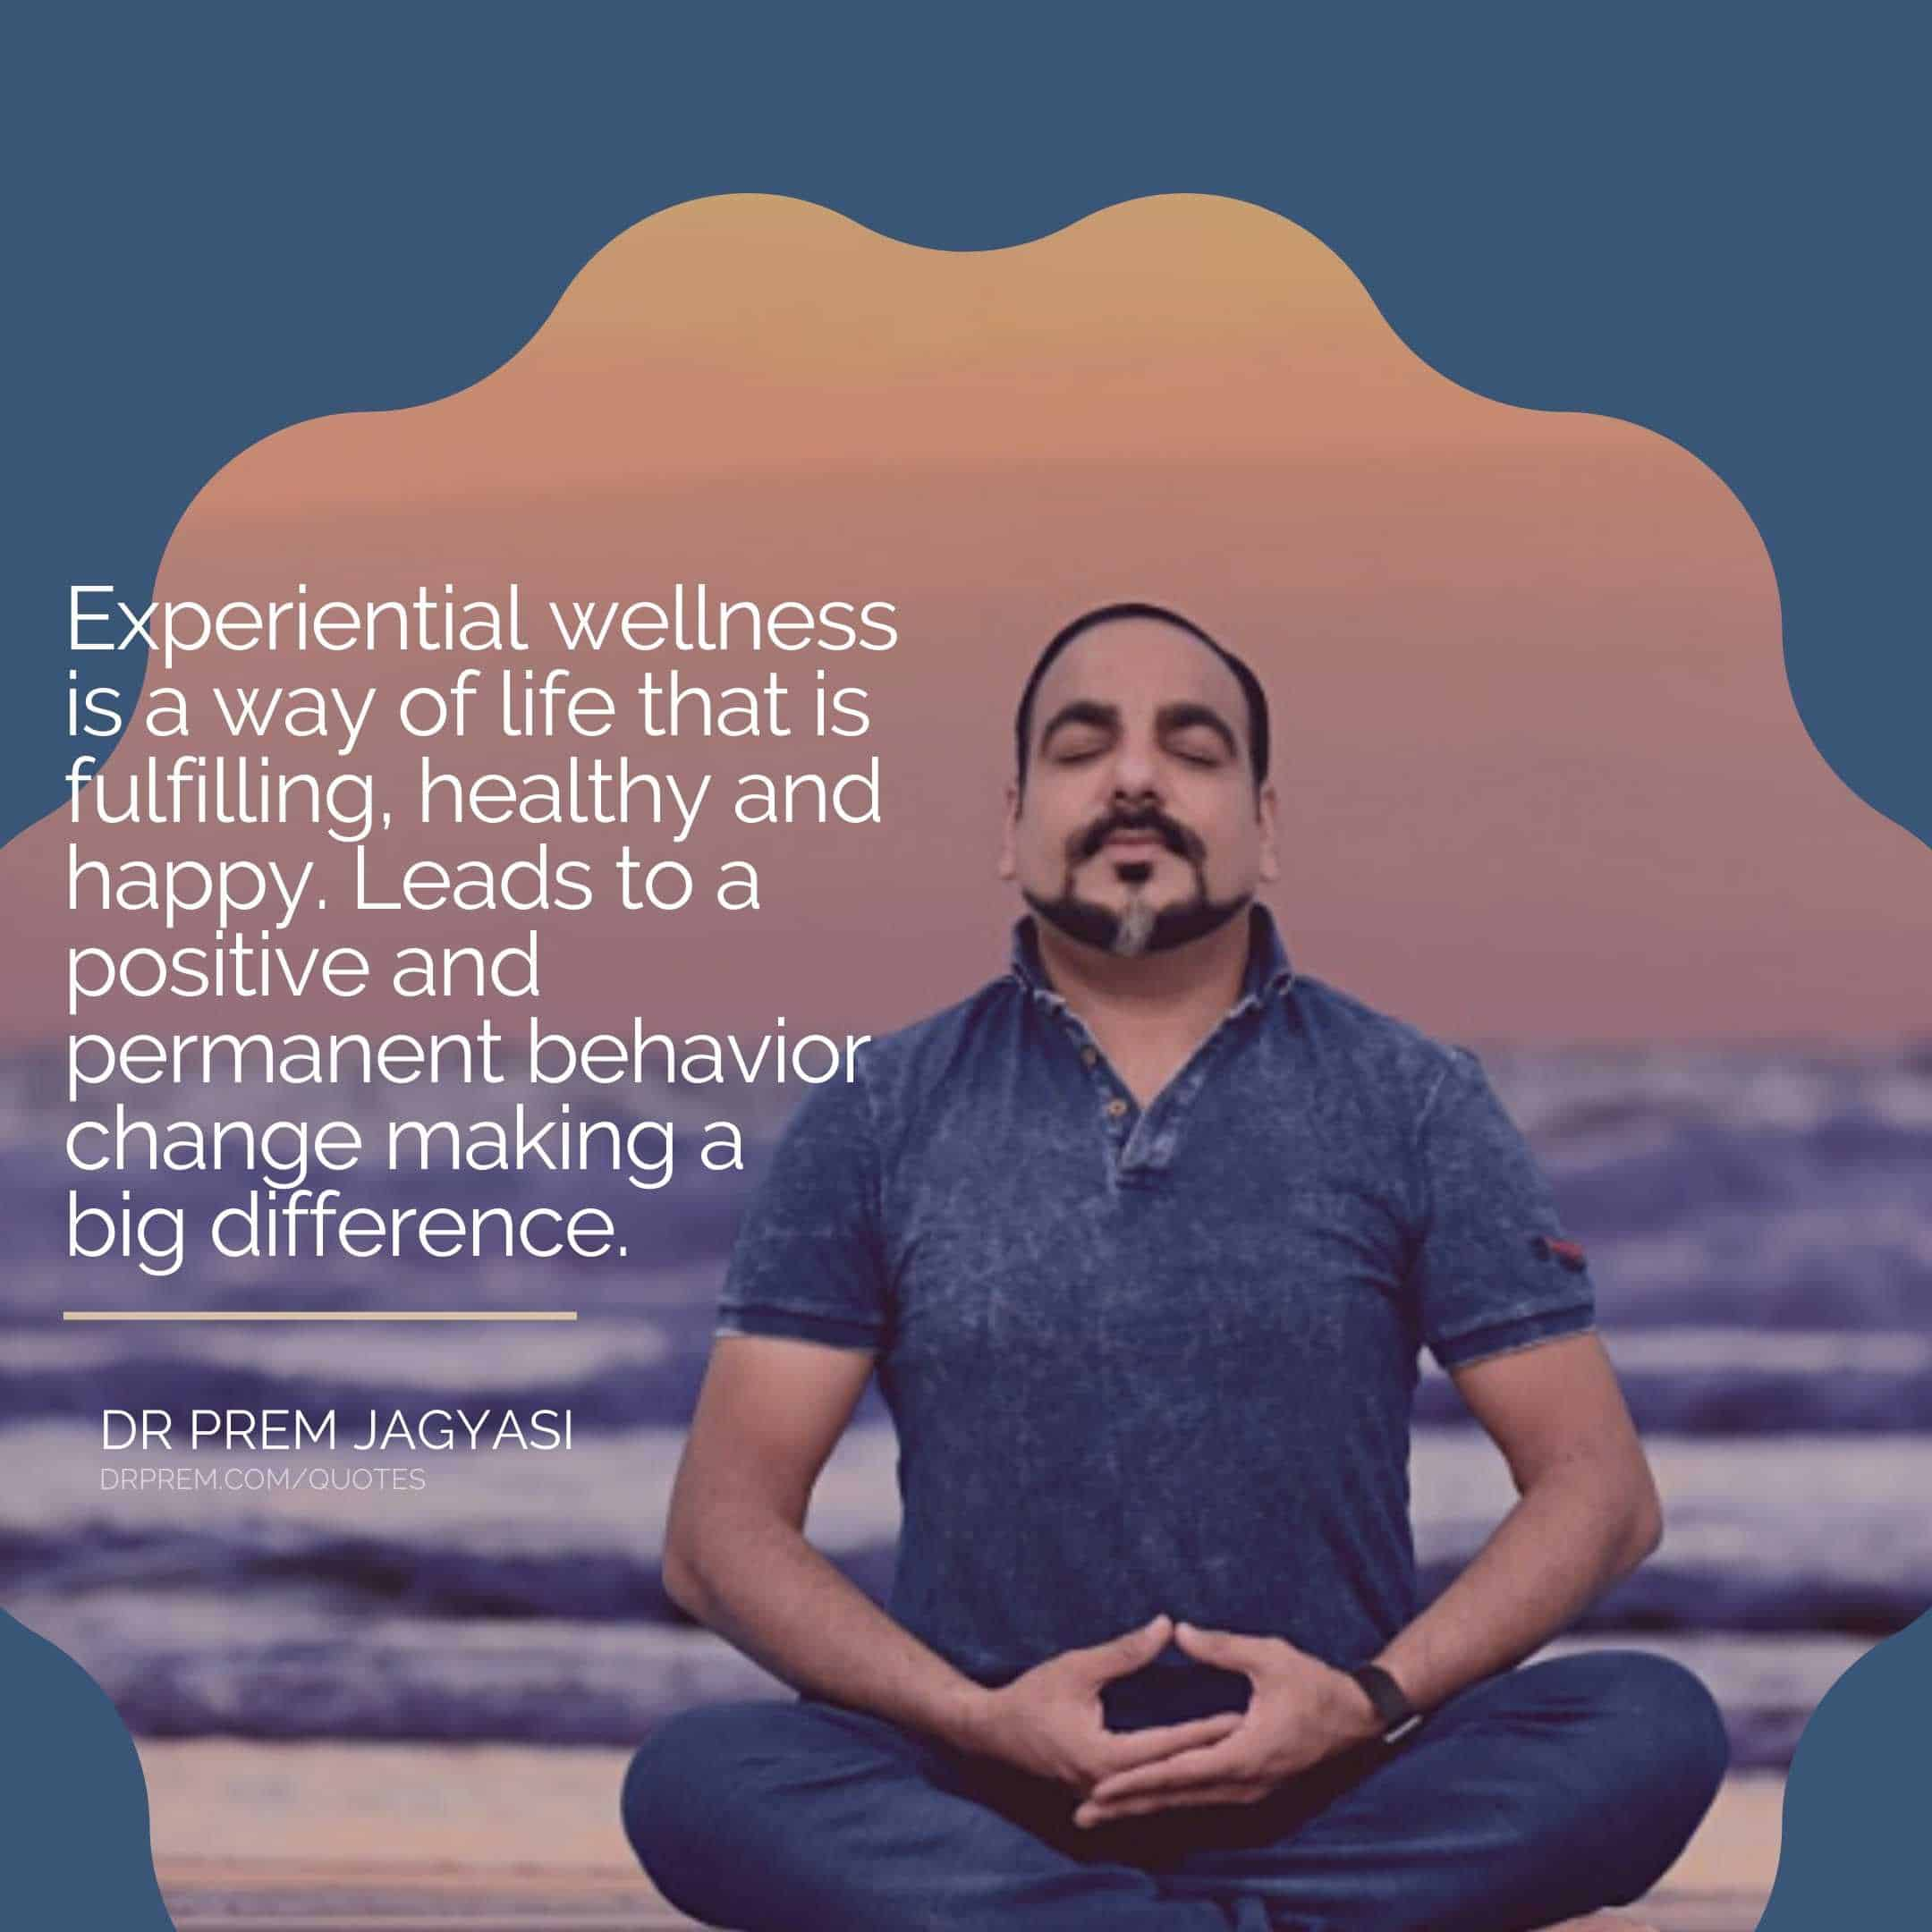 Experiential wellness is a way of life that is fulfilling, healthy and happy. Leads to a positive and permanent behavior change making a big difference.